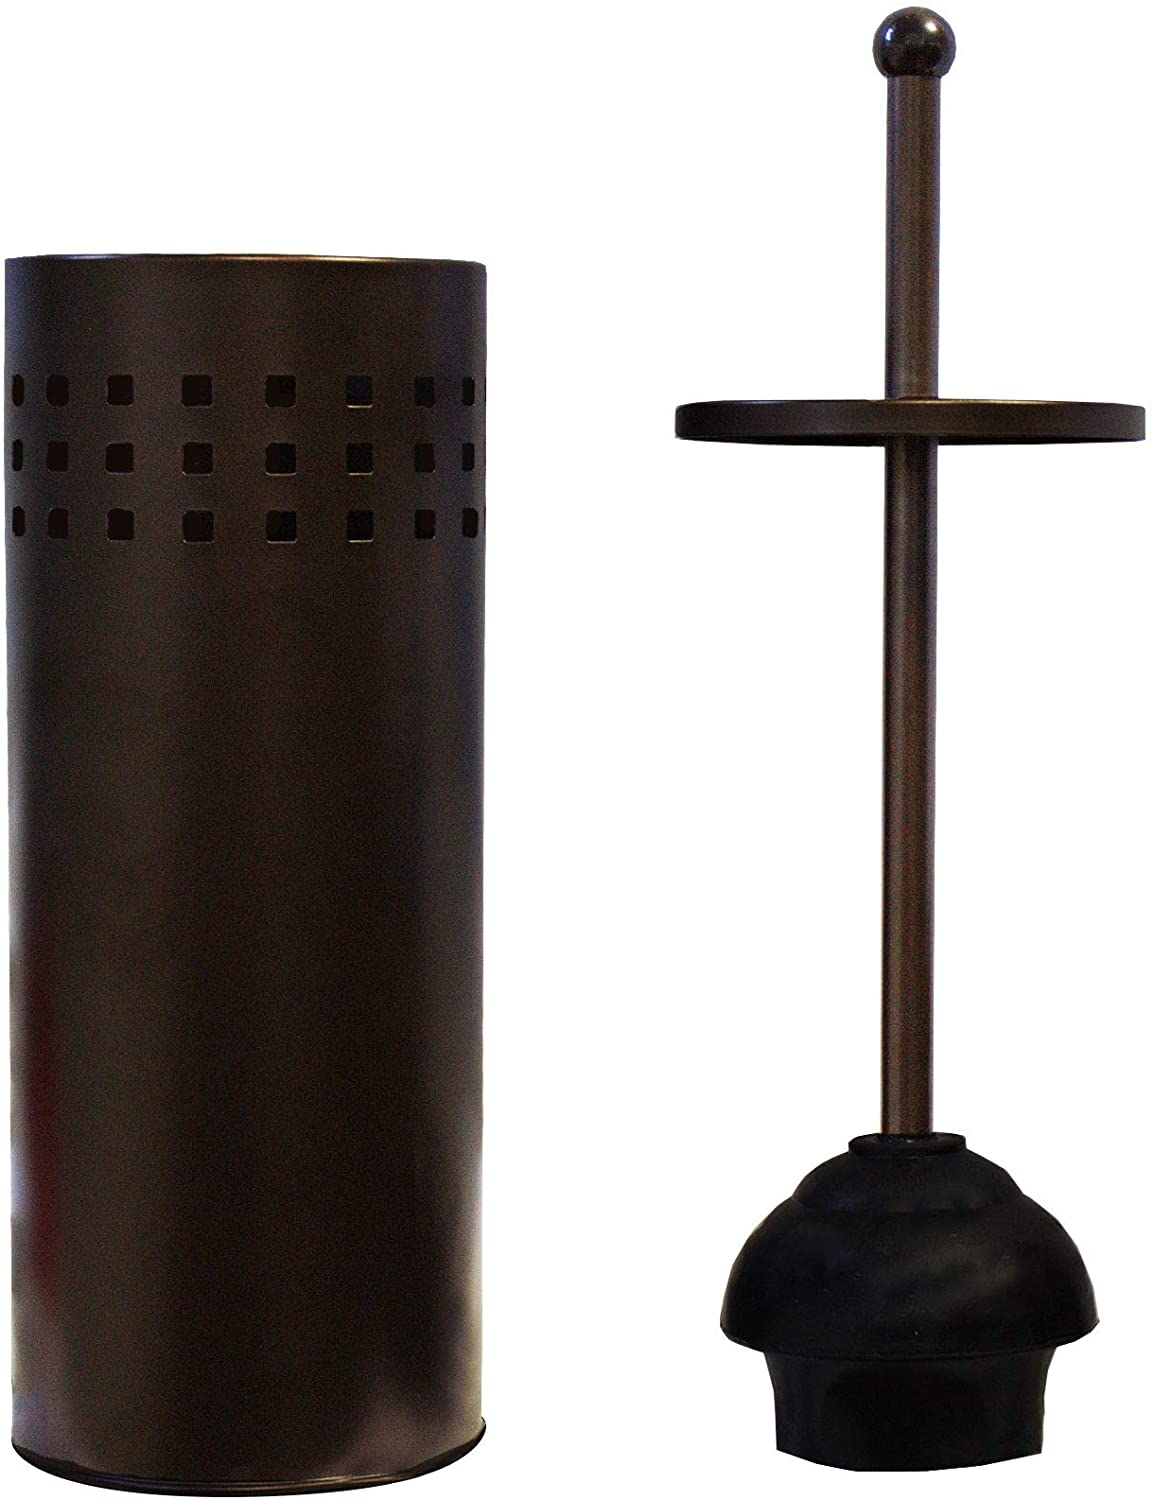 Blue Donuts Toilet Plunger with Holder for Bathroom, Multi Drain Suitable Also for Bathtubs, Quick Dry (Bronze)